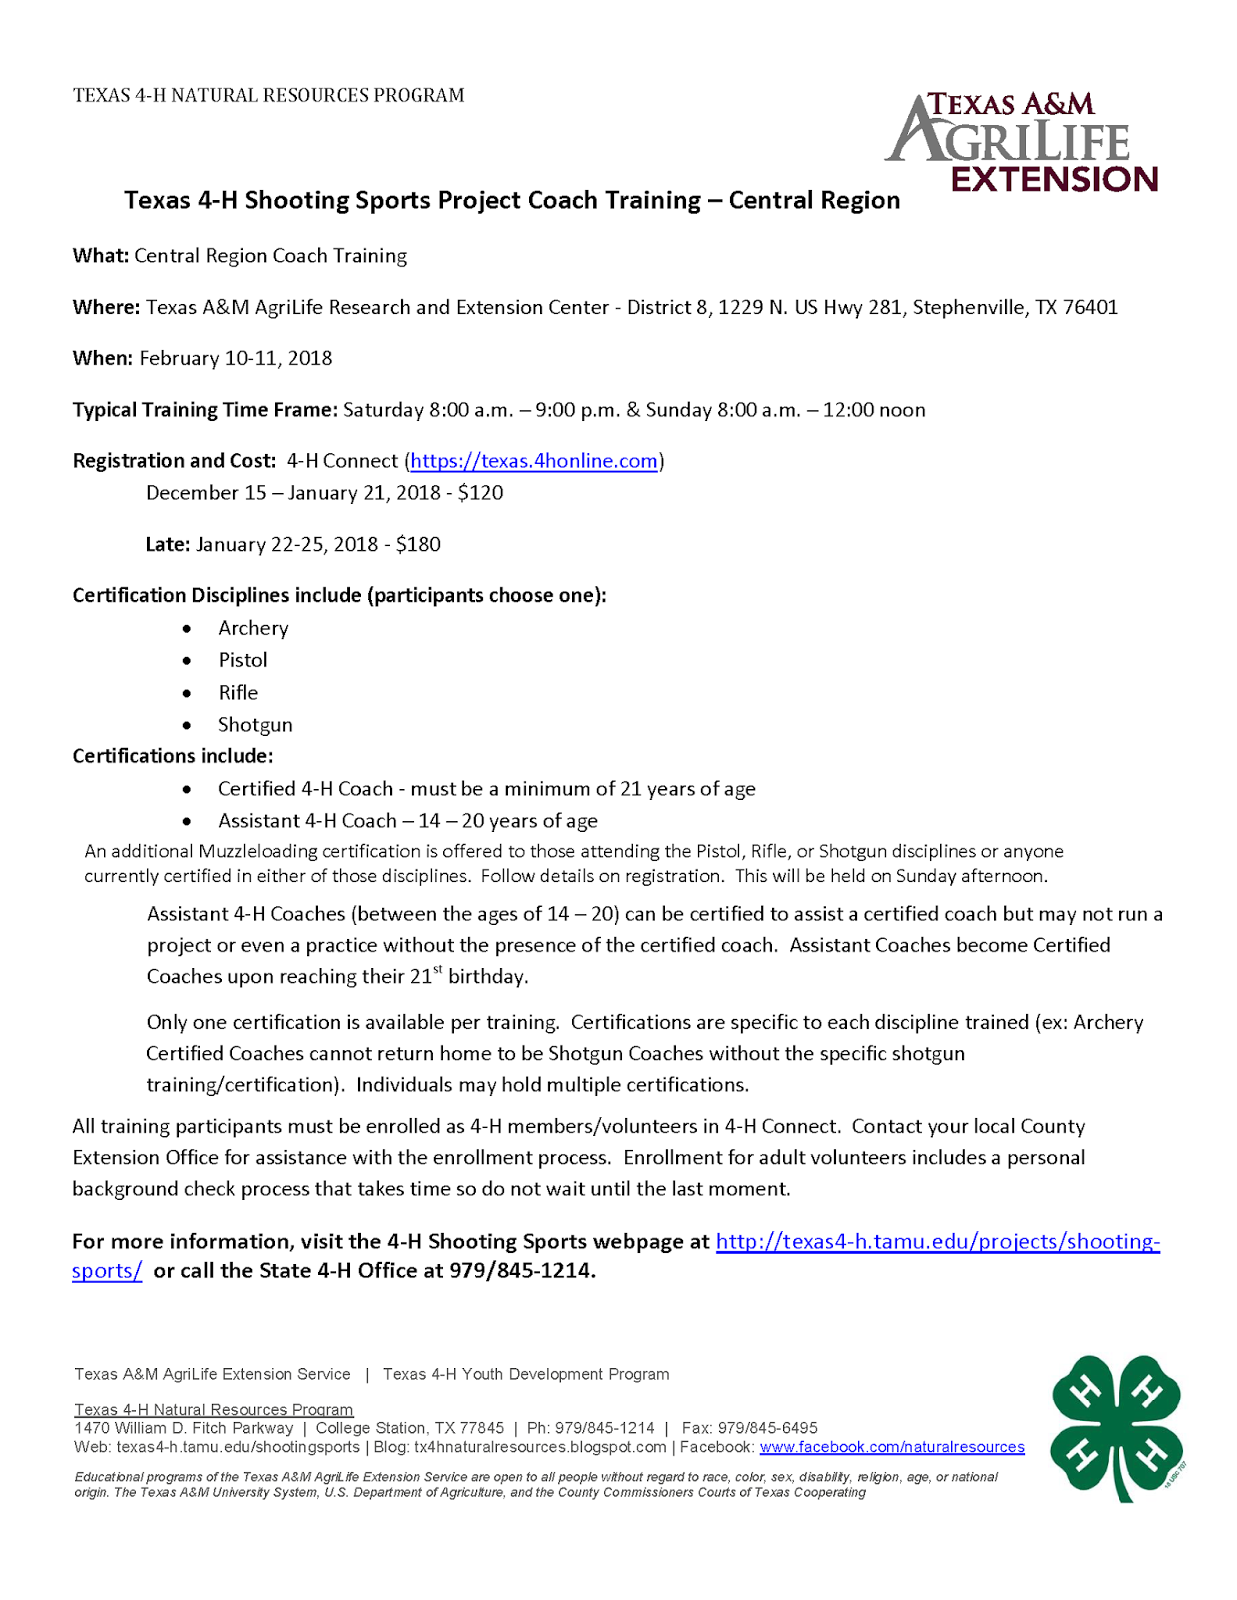 Travis County 4-H: Texas 4-H Shooting Sports Project Coach Training ...